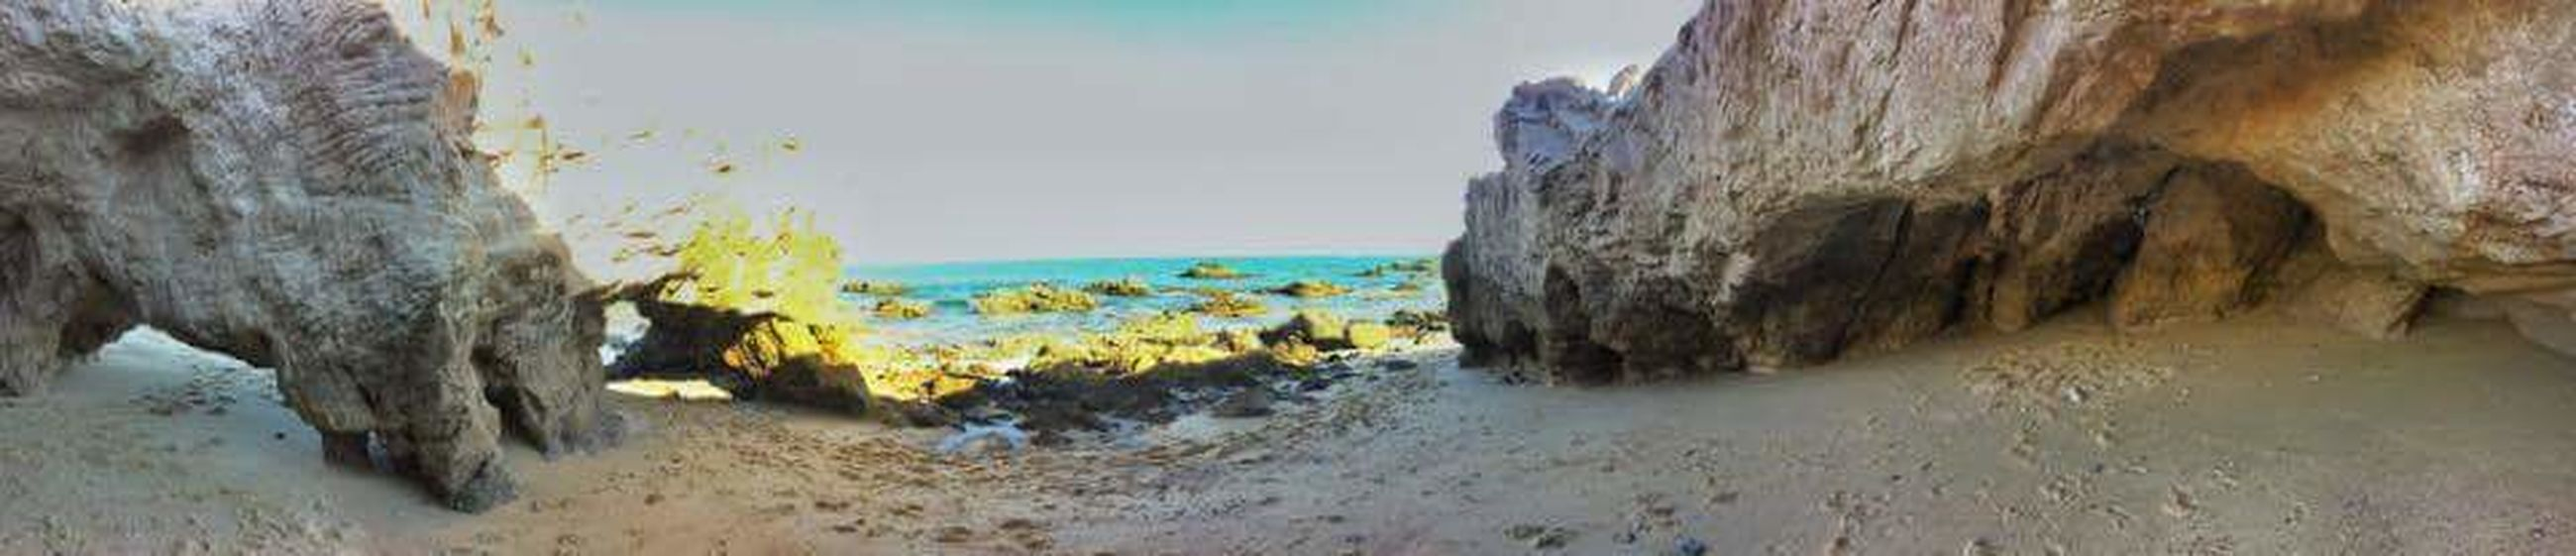 sea, nature, rock - object, water, beauty in nature, scenics, no people, beach, sky, day, outdoors, horizon over water